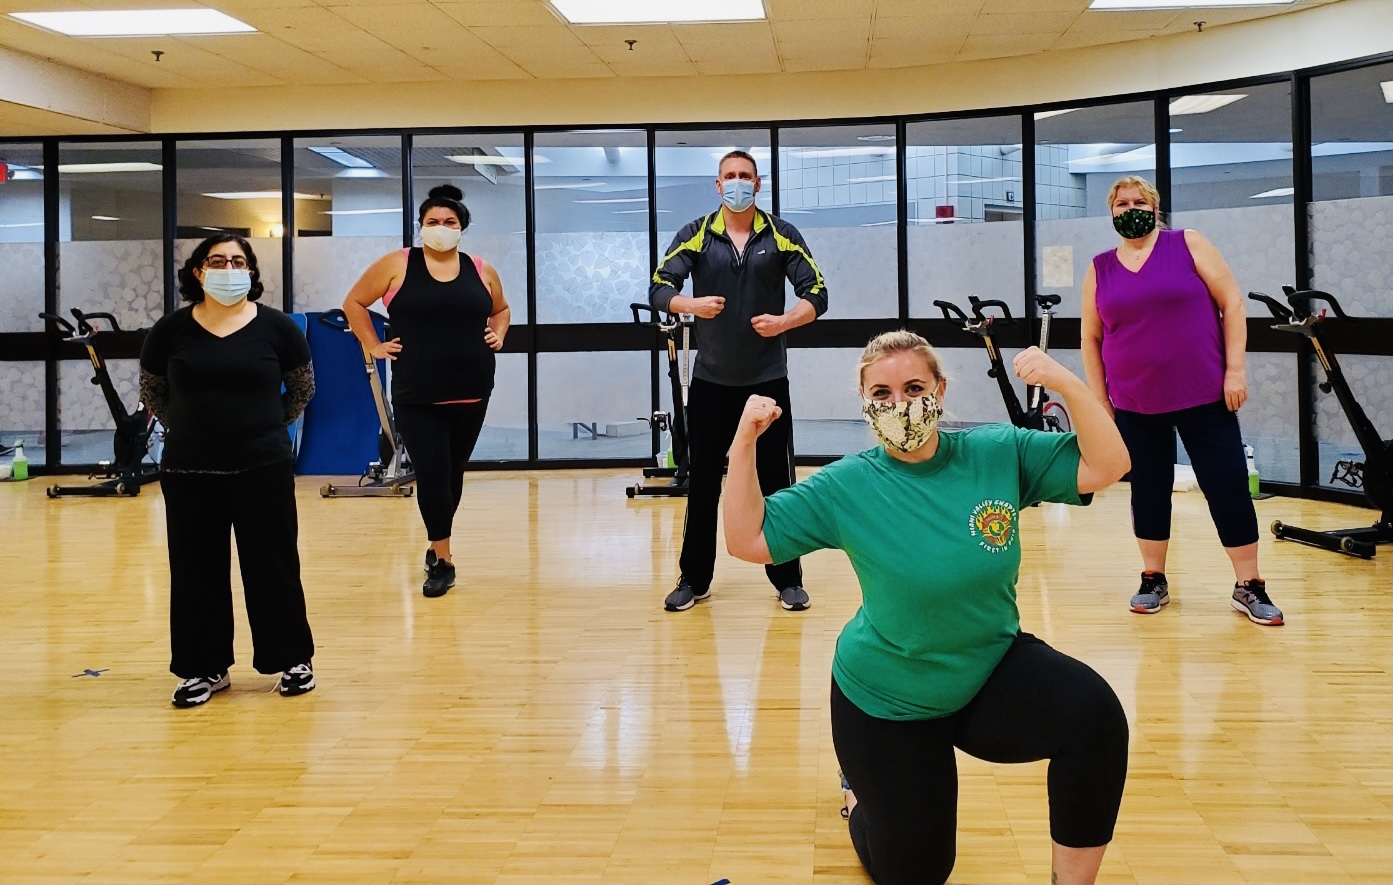 masked exercise class